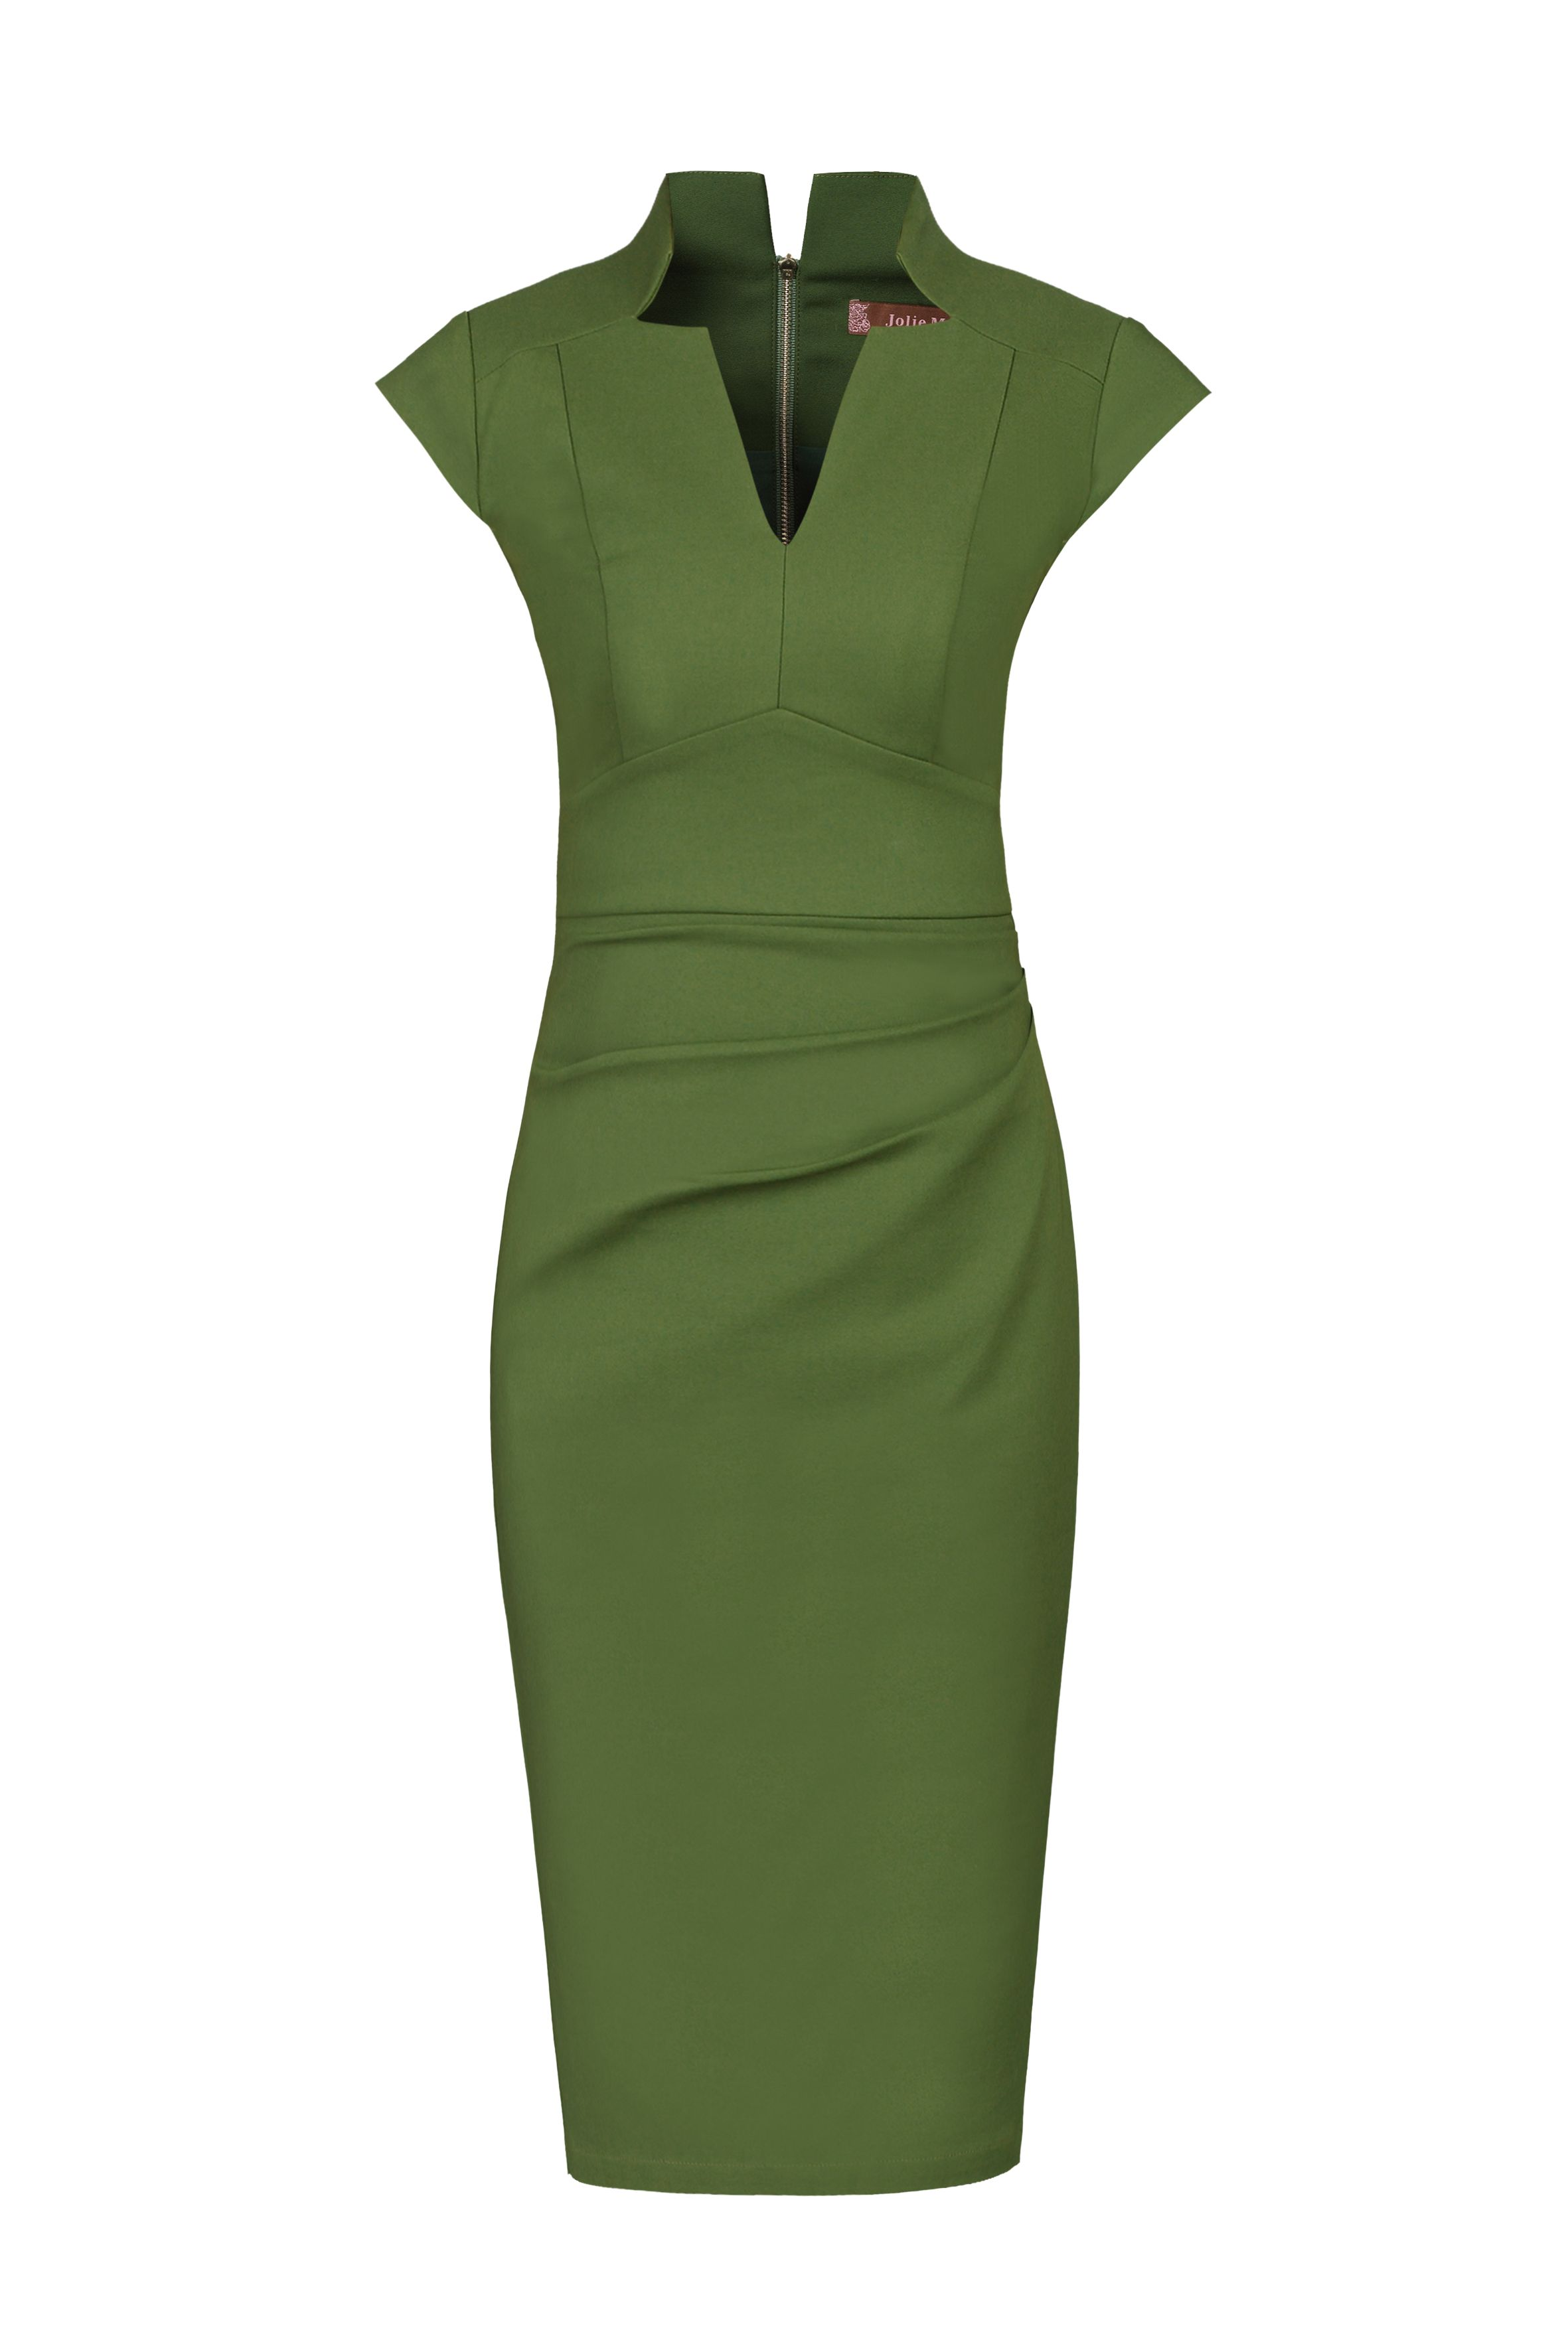 Jolie Moi V Neck Ruched Shift Dress, Green